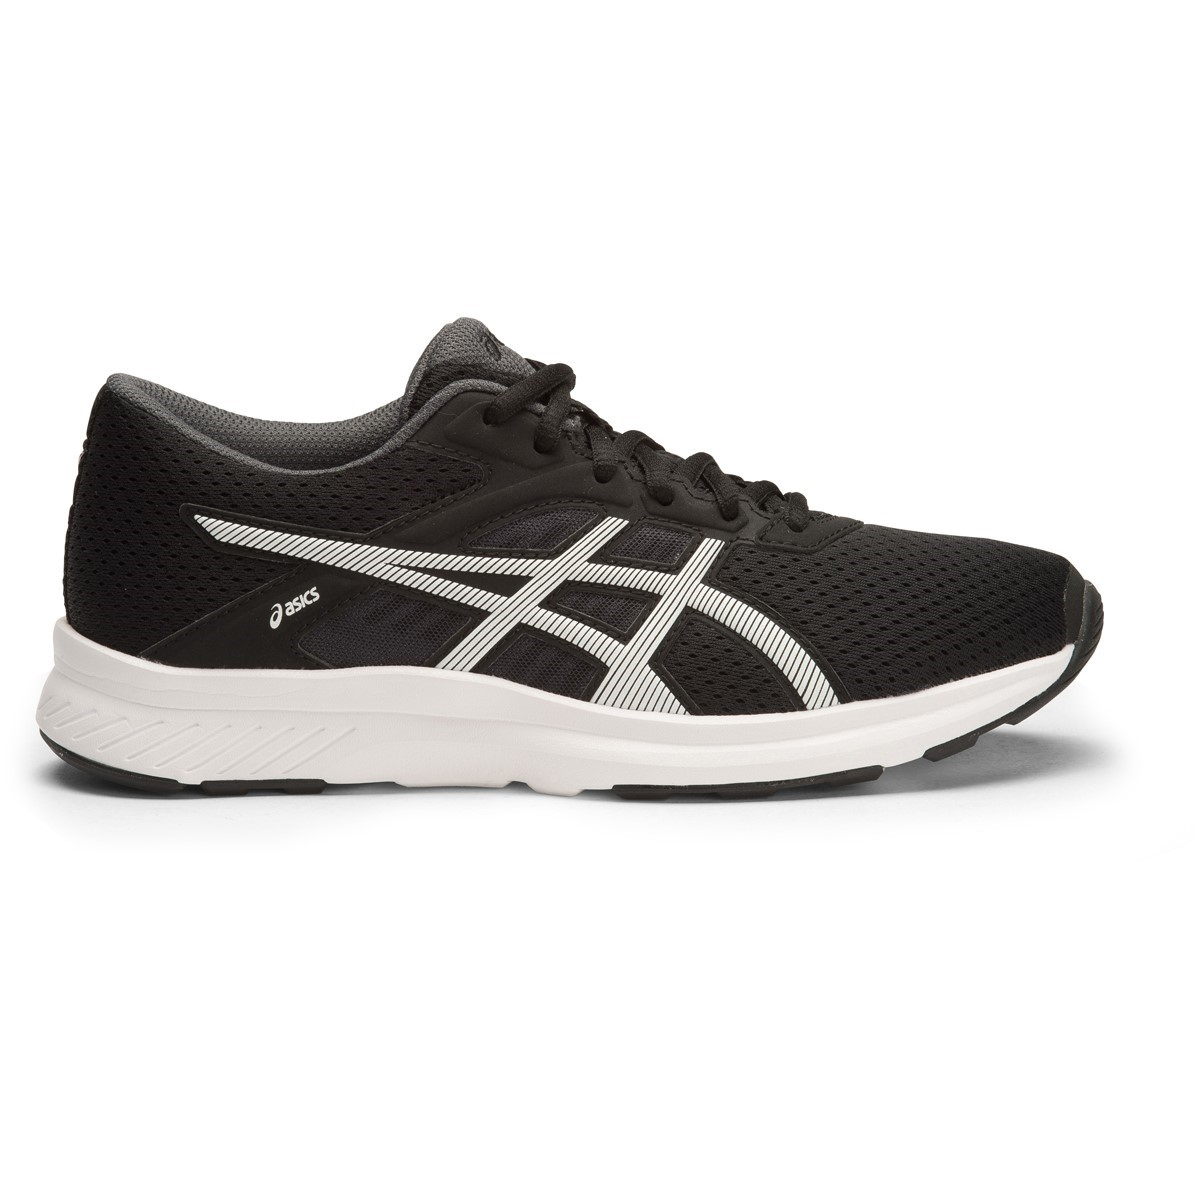 low priced dd28d b55c0 Asics Fuzor - Womens Running Shoes - Black White Dark Steel